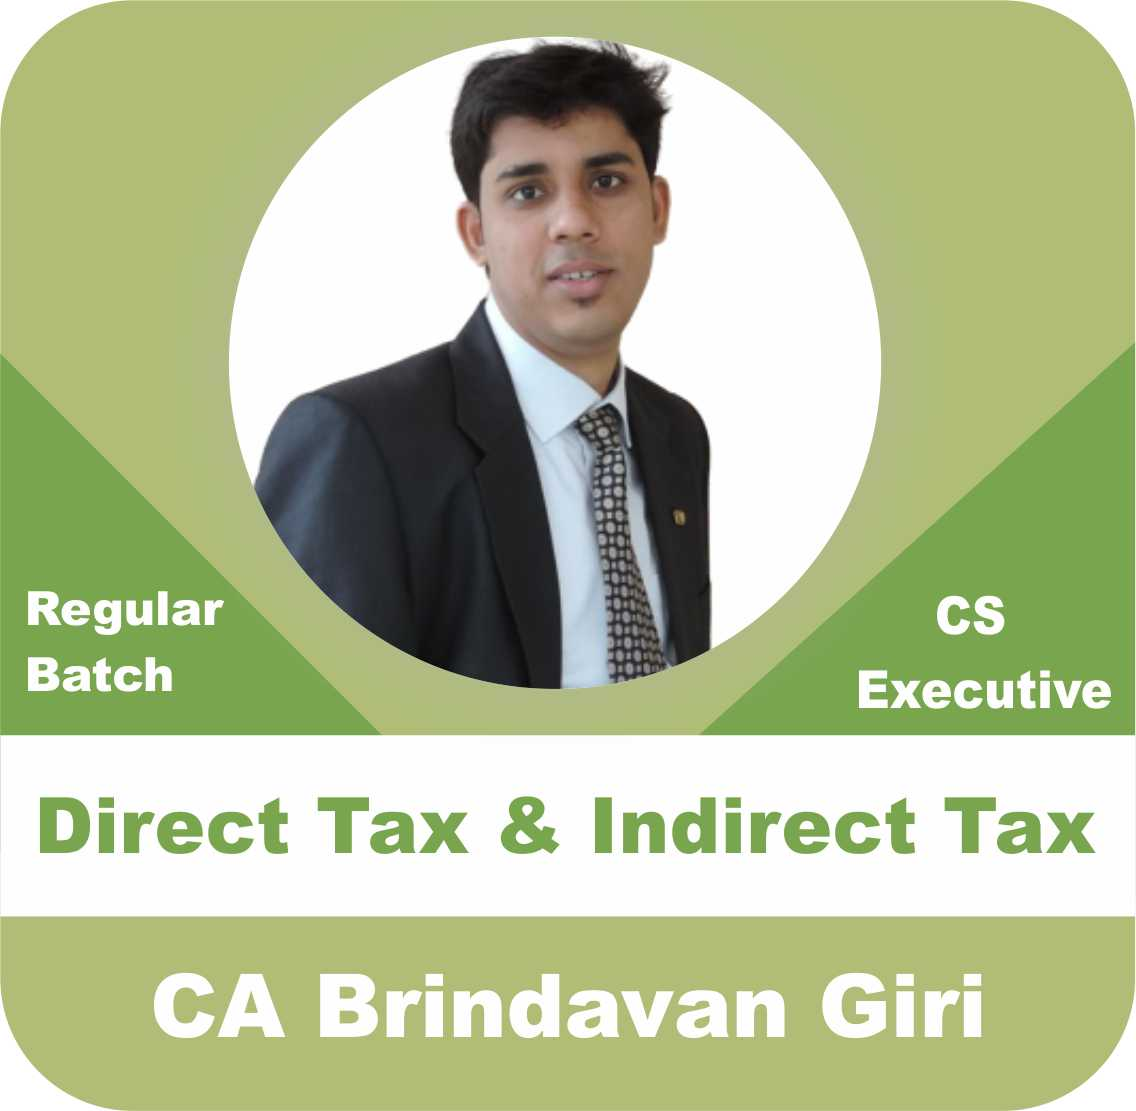 Direct Tax & Indirect Tax Regular Batch